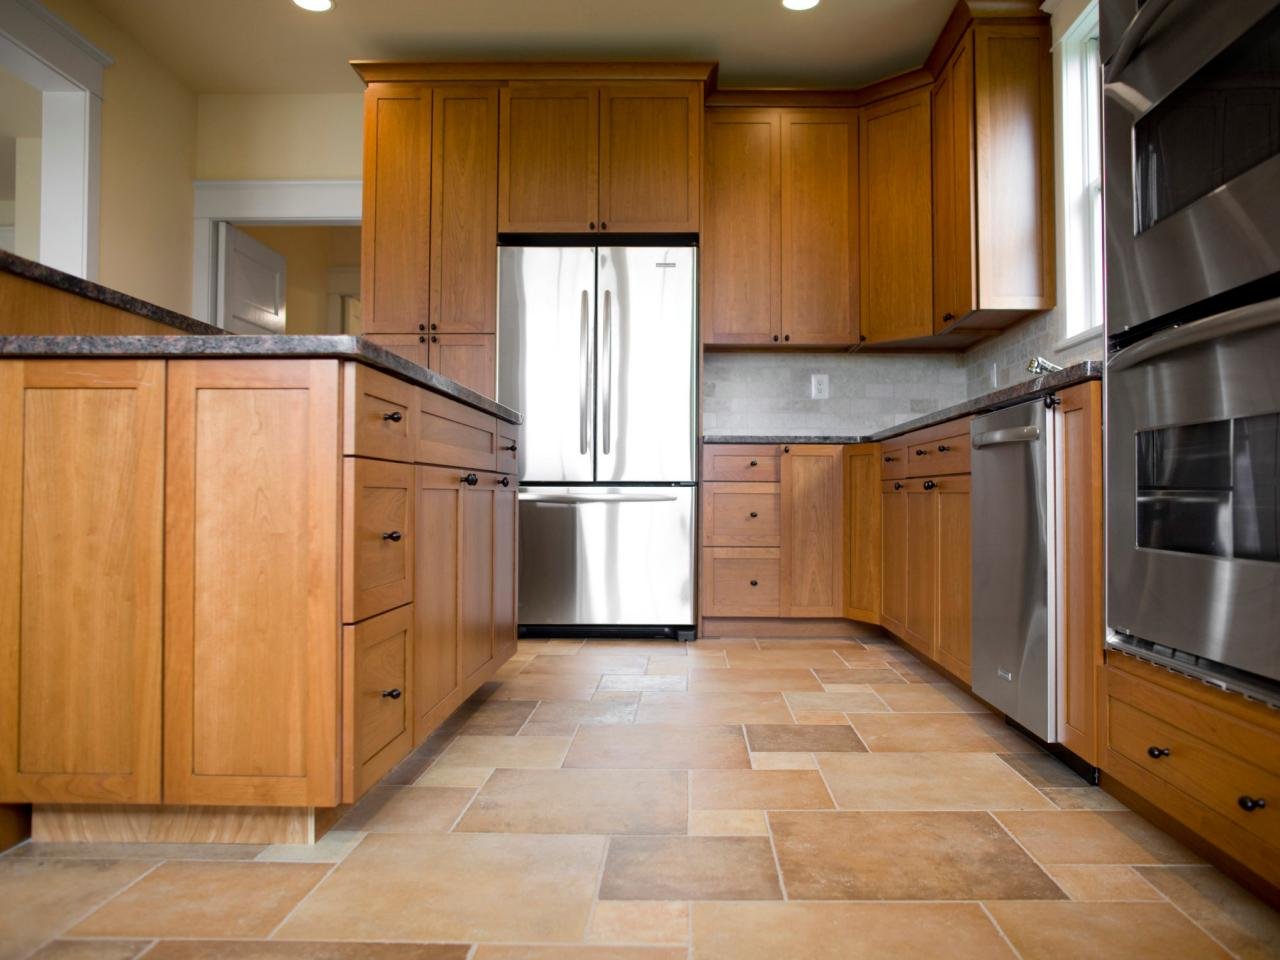 Best Floors For A Kitchen Choose The Best Flooring For Your Kitchen Hgtv